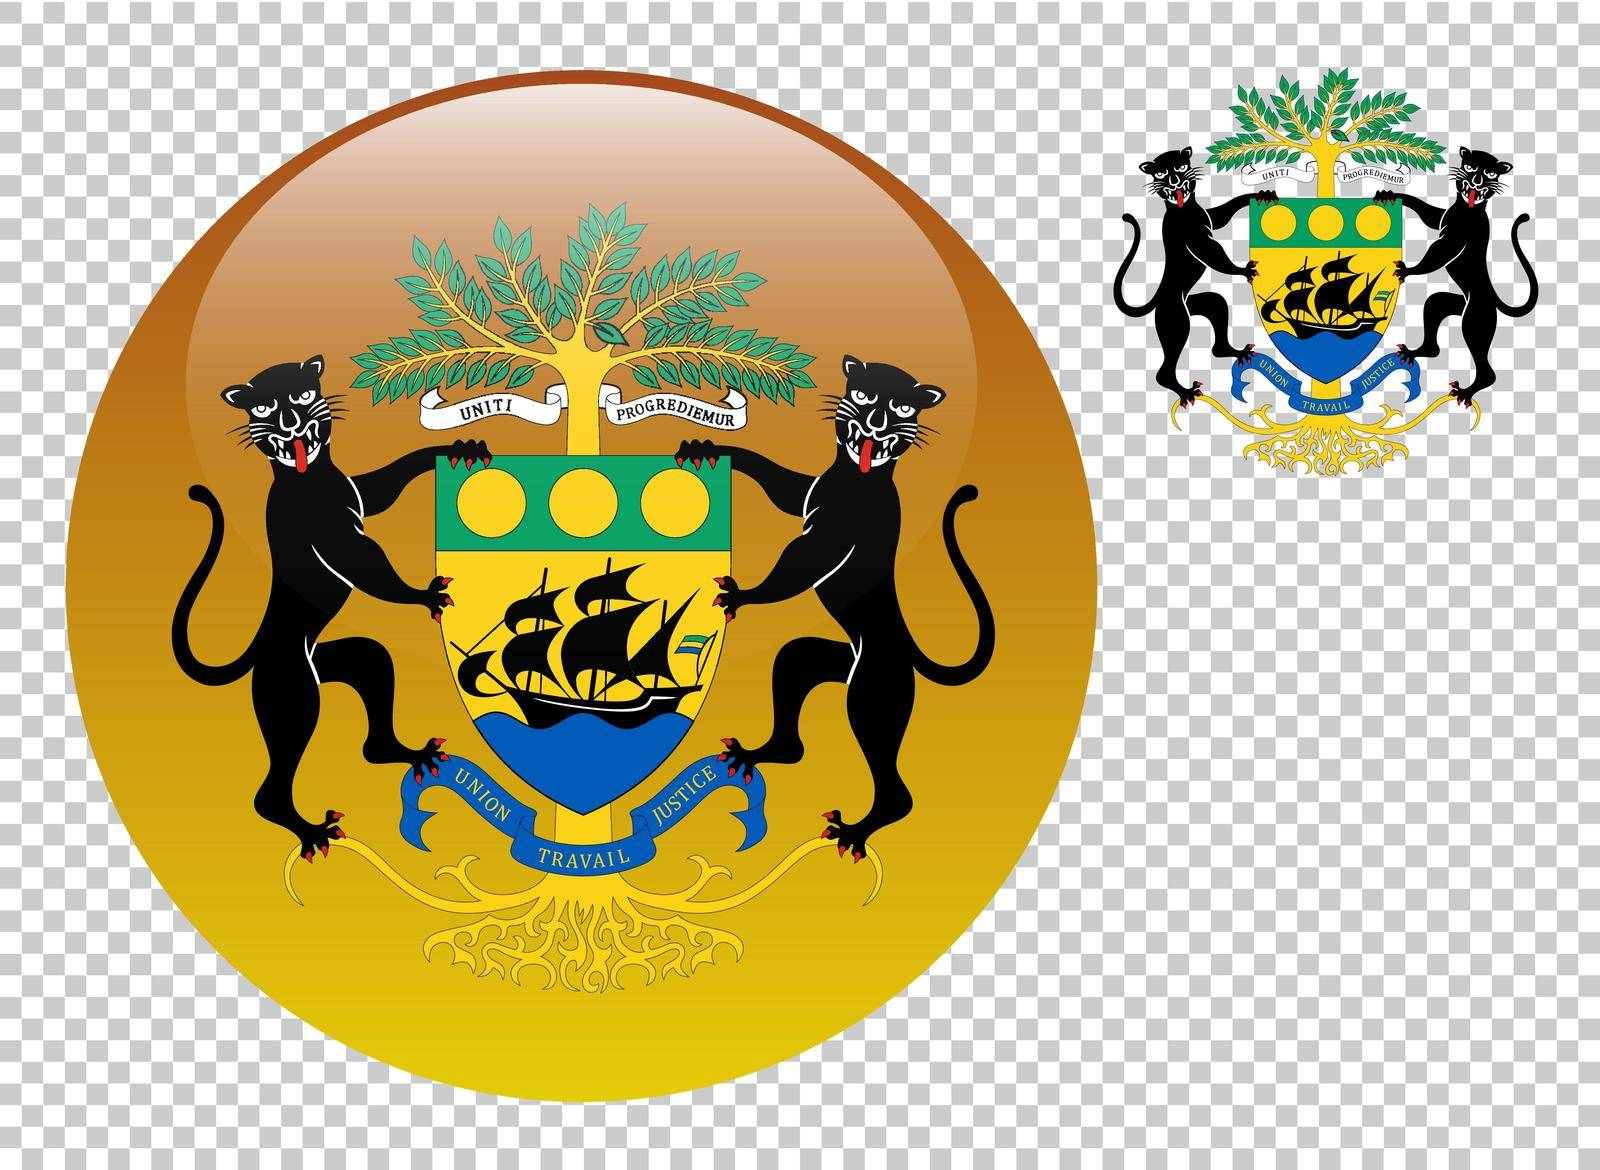 Coat of arms of Gabon vector illustration on a transparent background